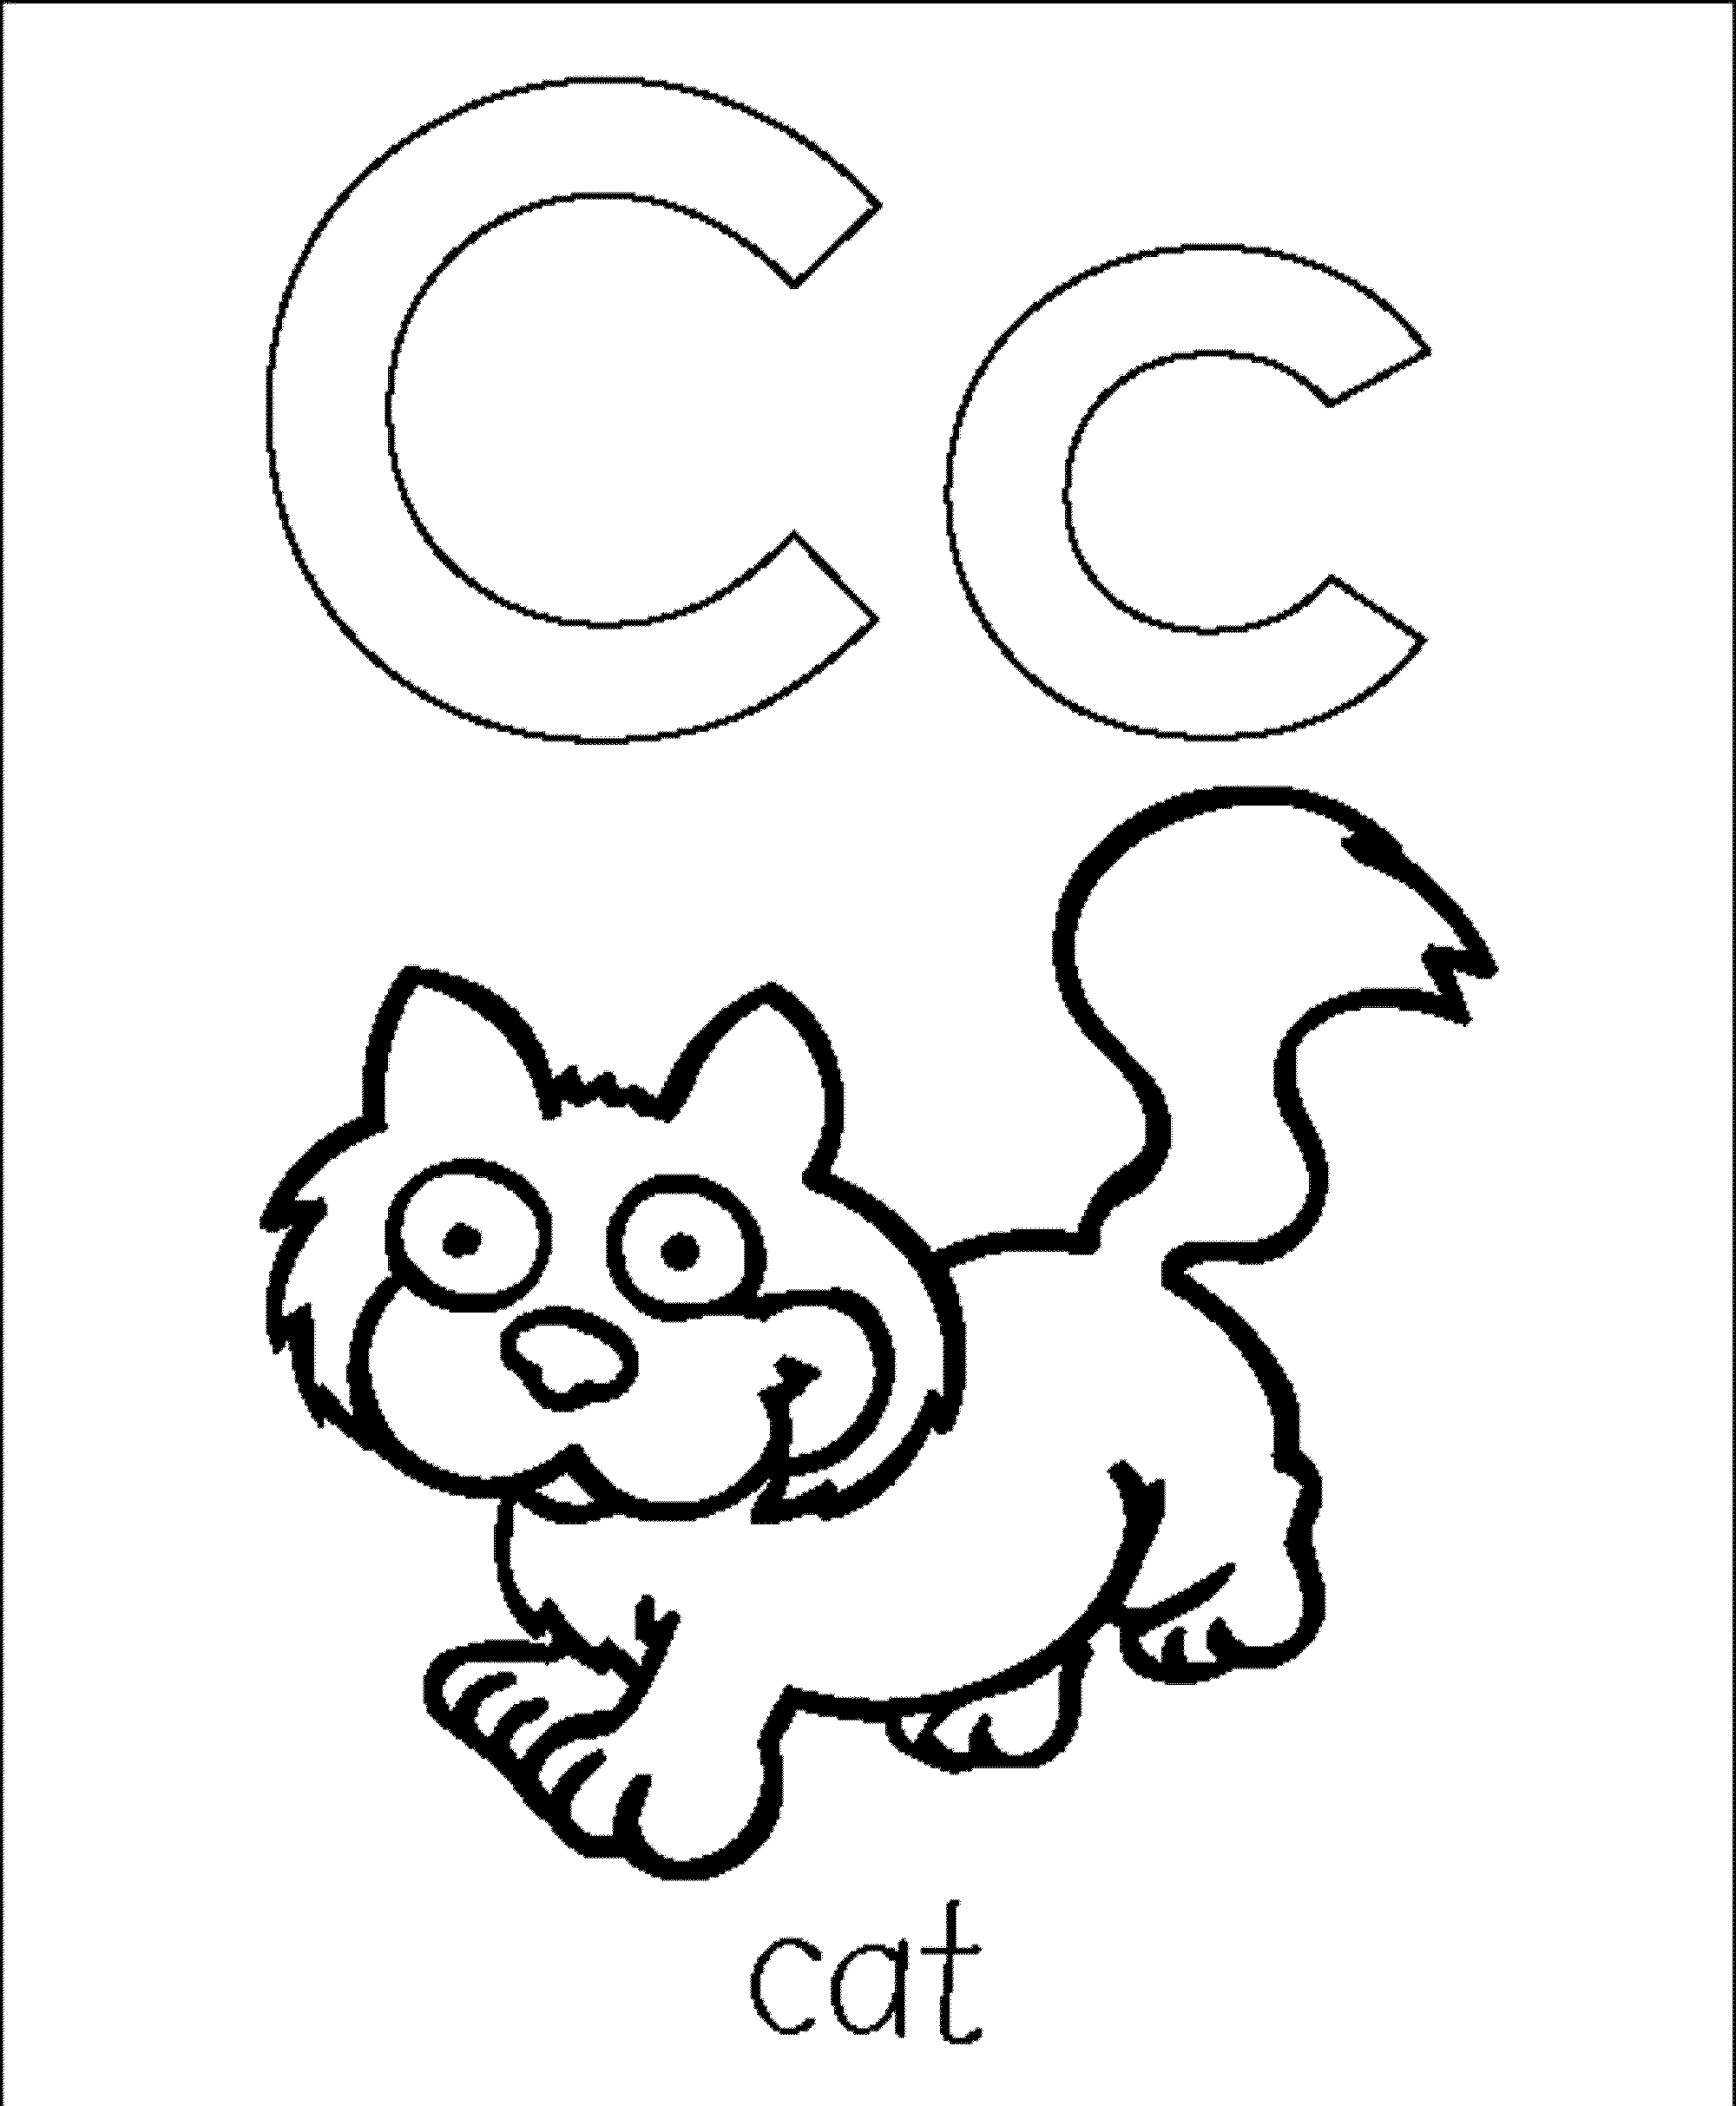 Abc coloring page printable kids colouring pages